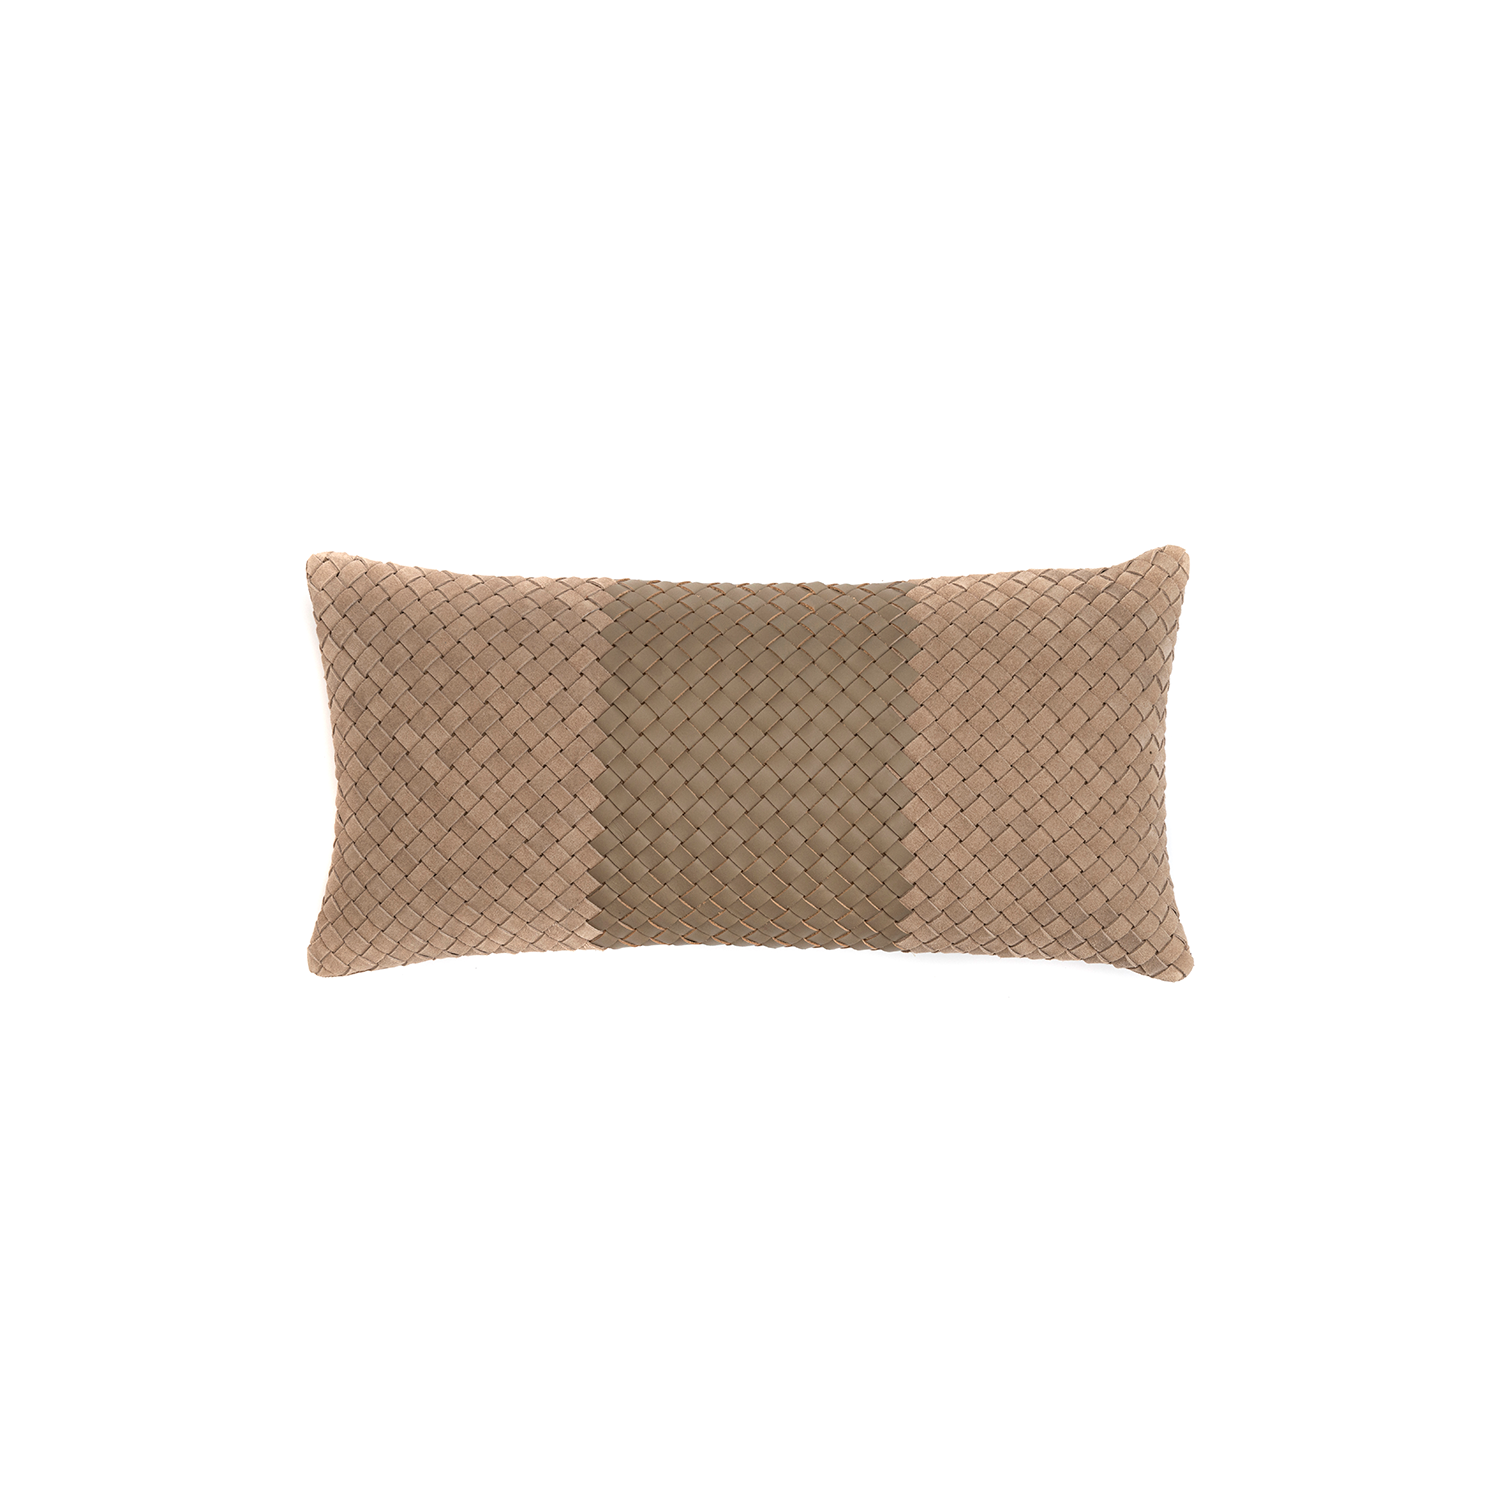 Mosaico Faixa Bicolor Woven Leather Cushion Small - The Mosaico Faixa Bicolor Woven Leather Cushion is designed to complement an ambient with a natural and sophisticated feeling. This cushion style is available in pleated leather or pleated suede leather. Elisa Atheniense woven handmade leather cushions are specially manufactured in Brazil using an exclusive treated leather that brings the soft feel touch to every single piece.   The front panel is handwoven in leather and the back panel is 100% Pes, made in Brazil.  The inner cushion is available in Hollow Fibre and European Duck Feathers, made in the UK.  Mosaico Faixa Bicolor Woven Leather Cushion is available in multiple colours of leather and suede leather. Please enquire for colour combination, see colour chart for reference.   | Matter of Stuff